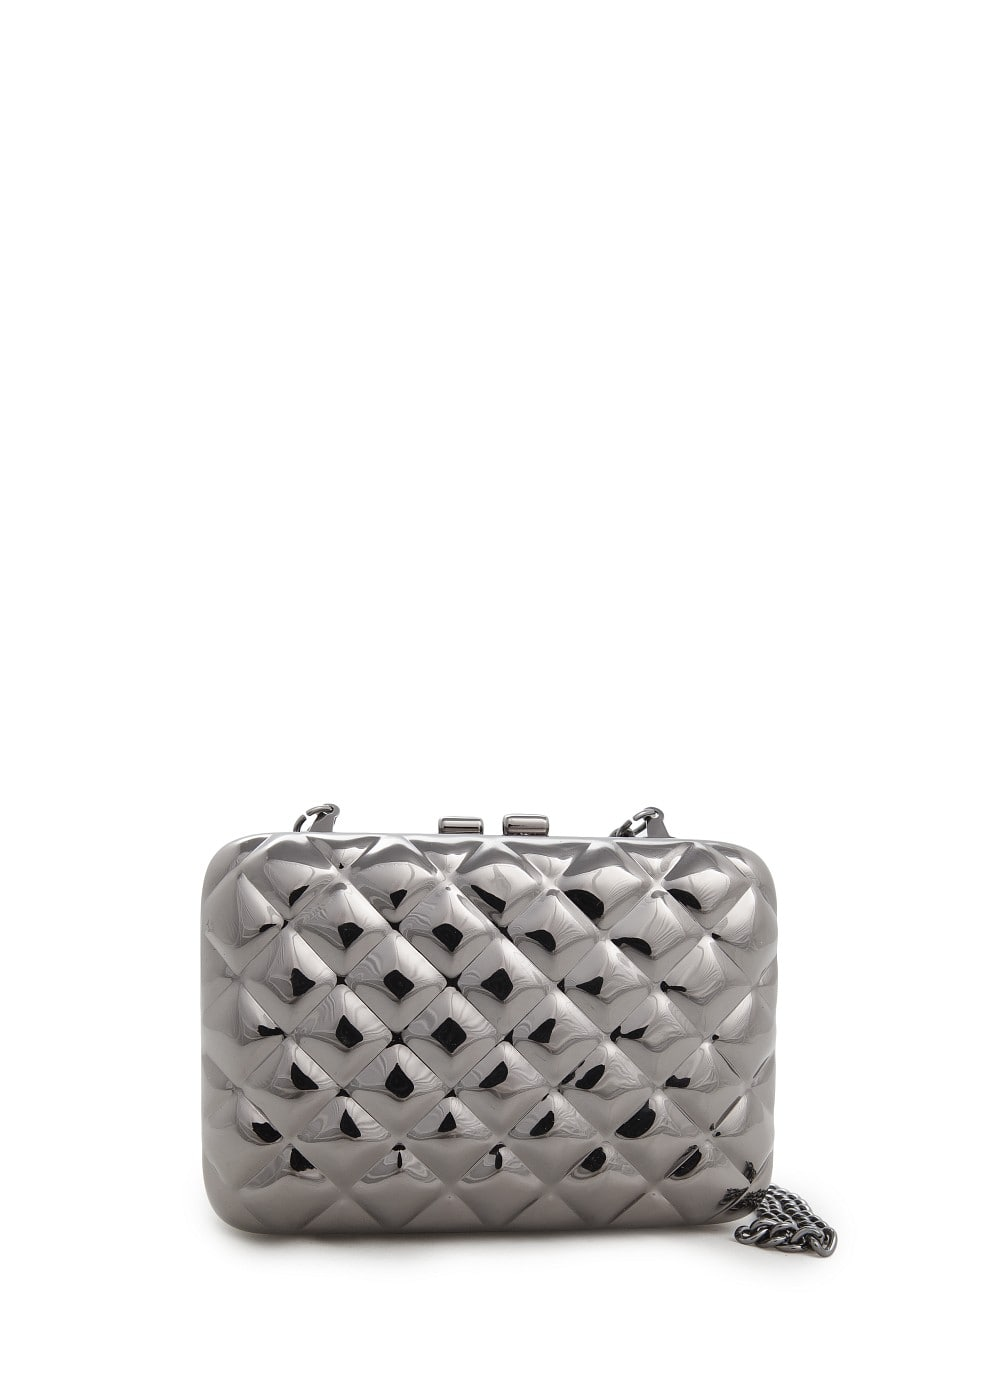 Quilted metal box clutch